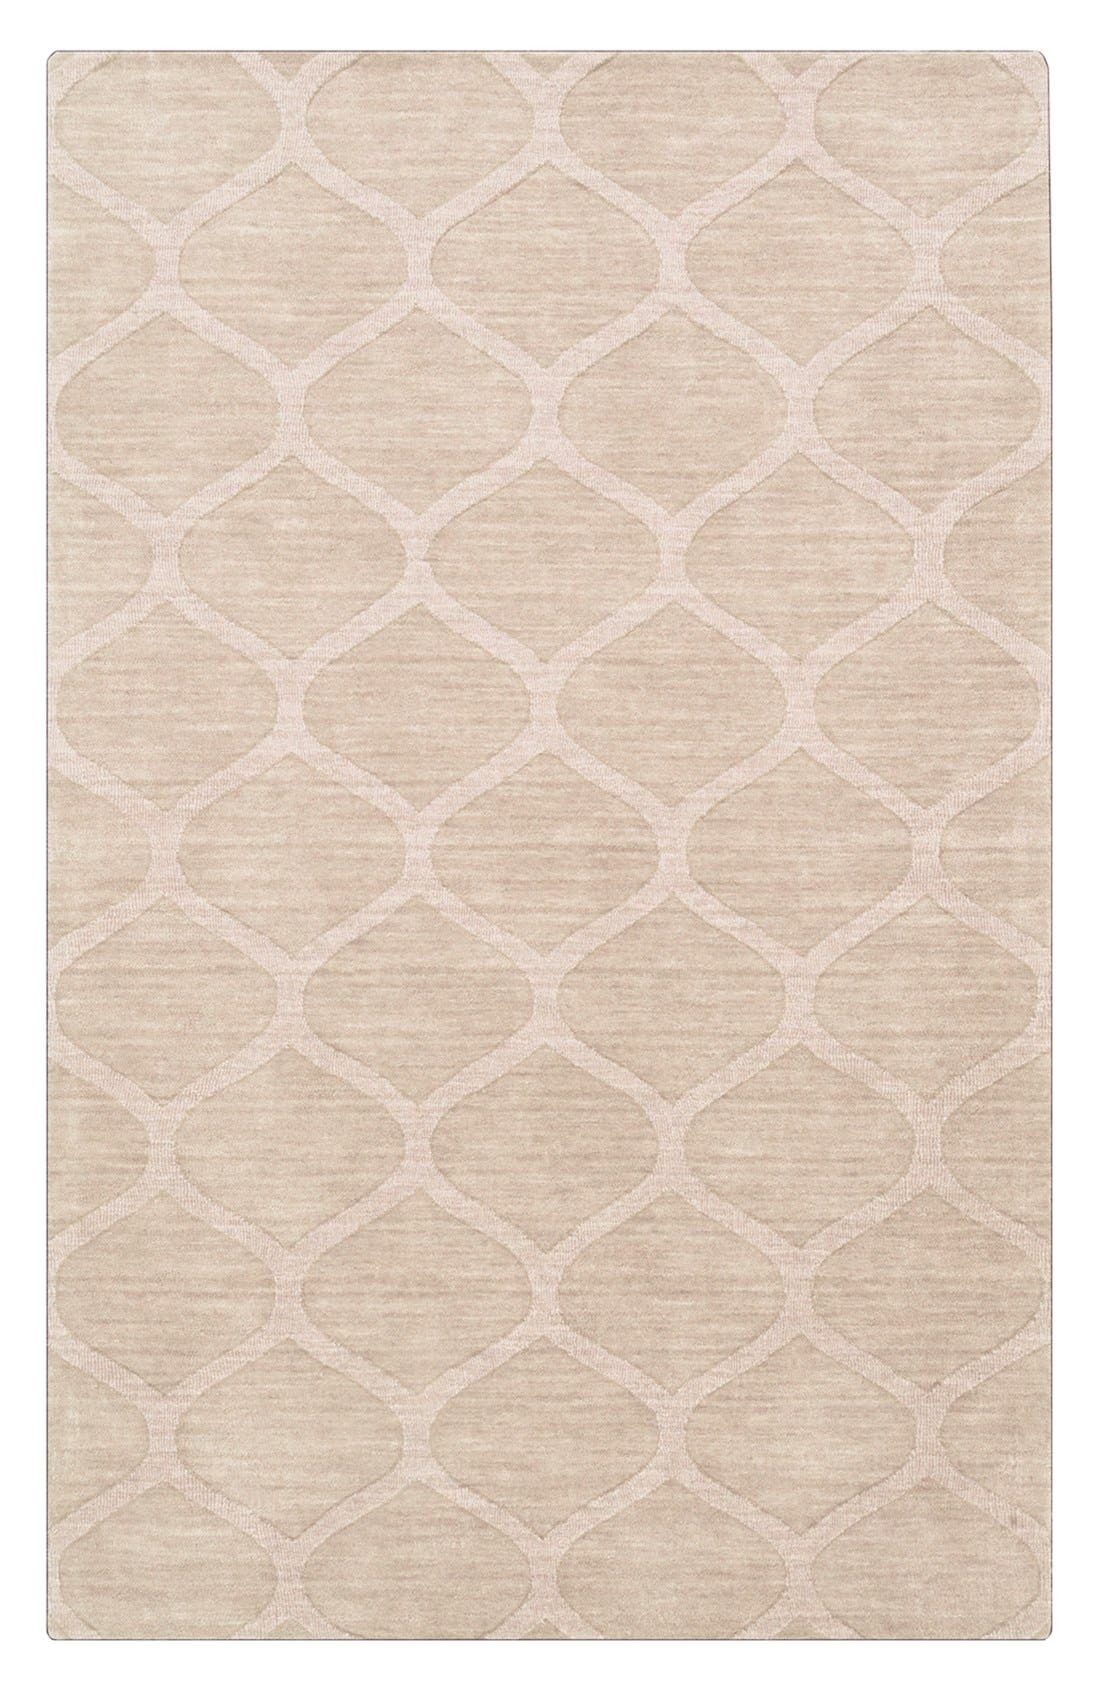 'Mystique' Hand Loomed Wool Rug,                             Main thumbnail 1, color,                             IVORY